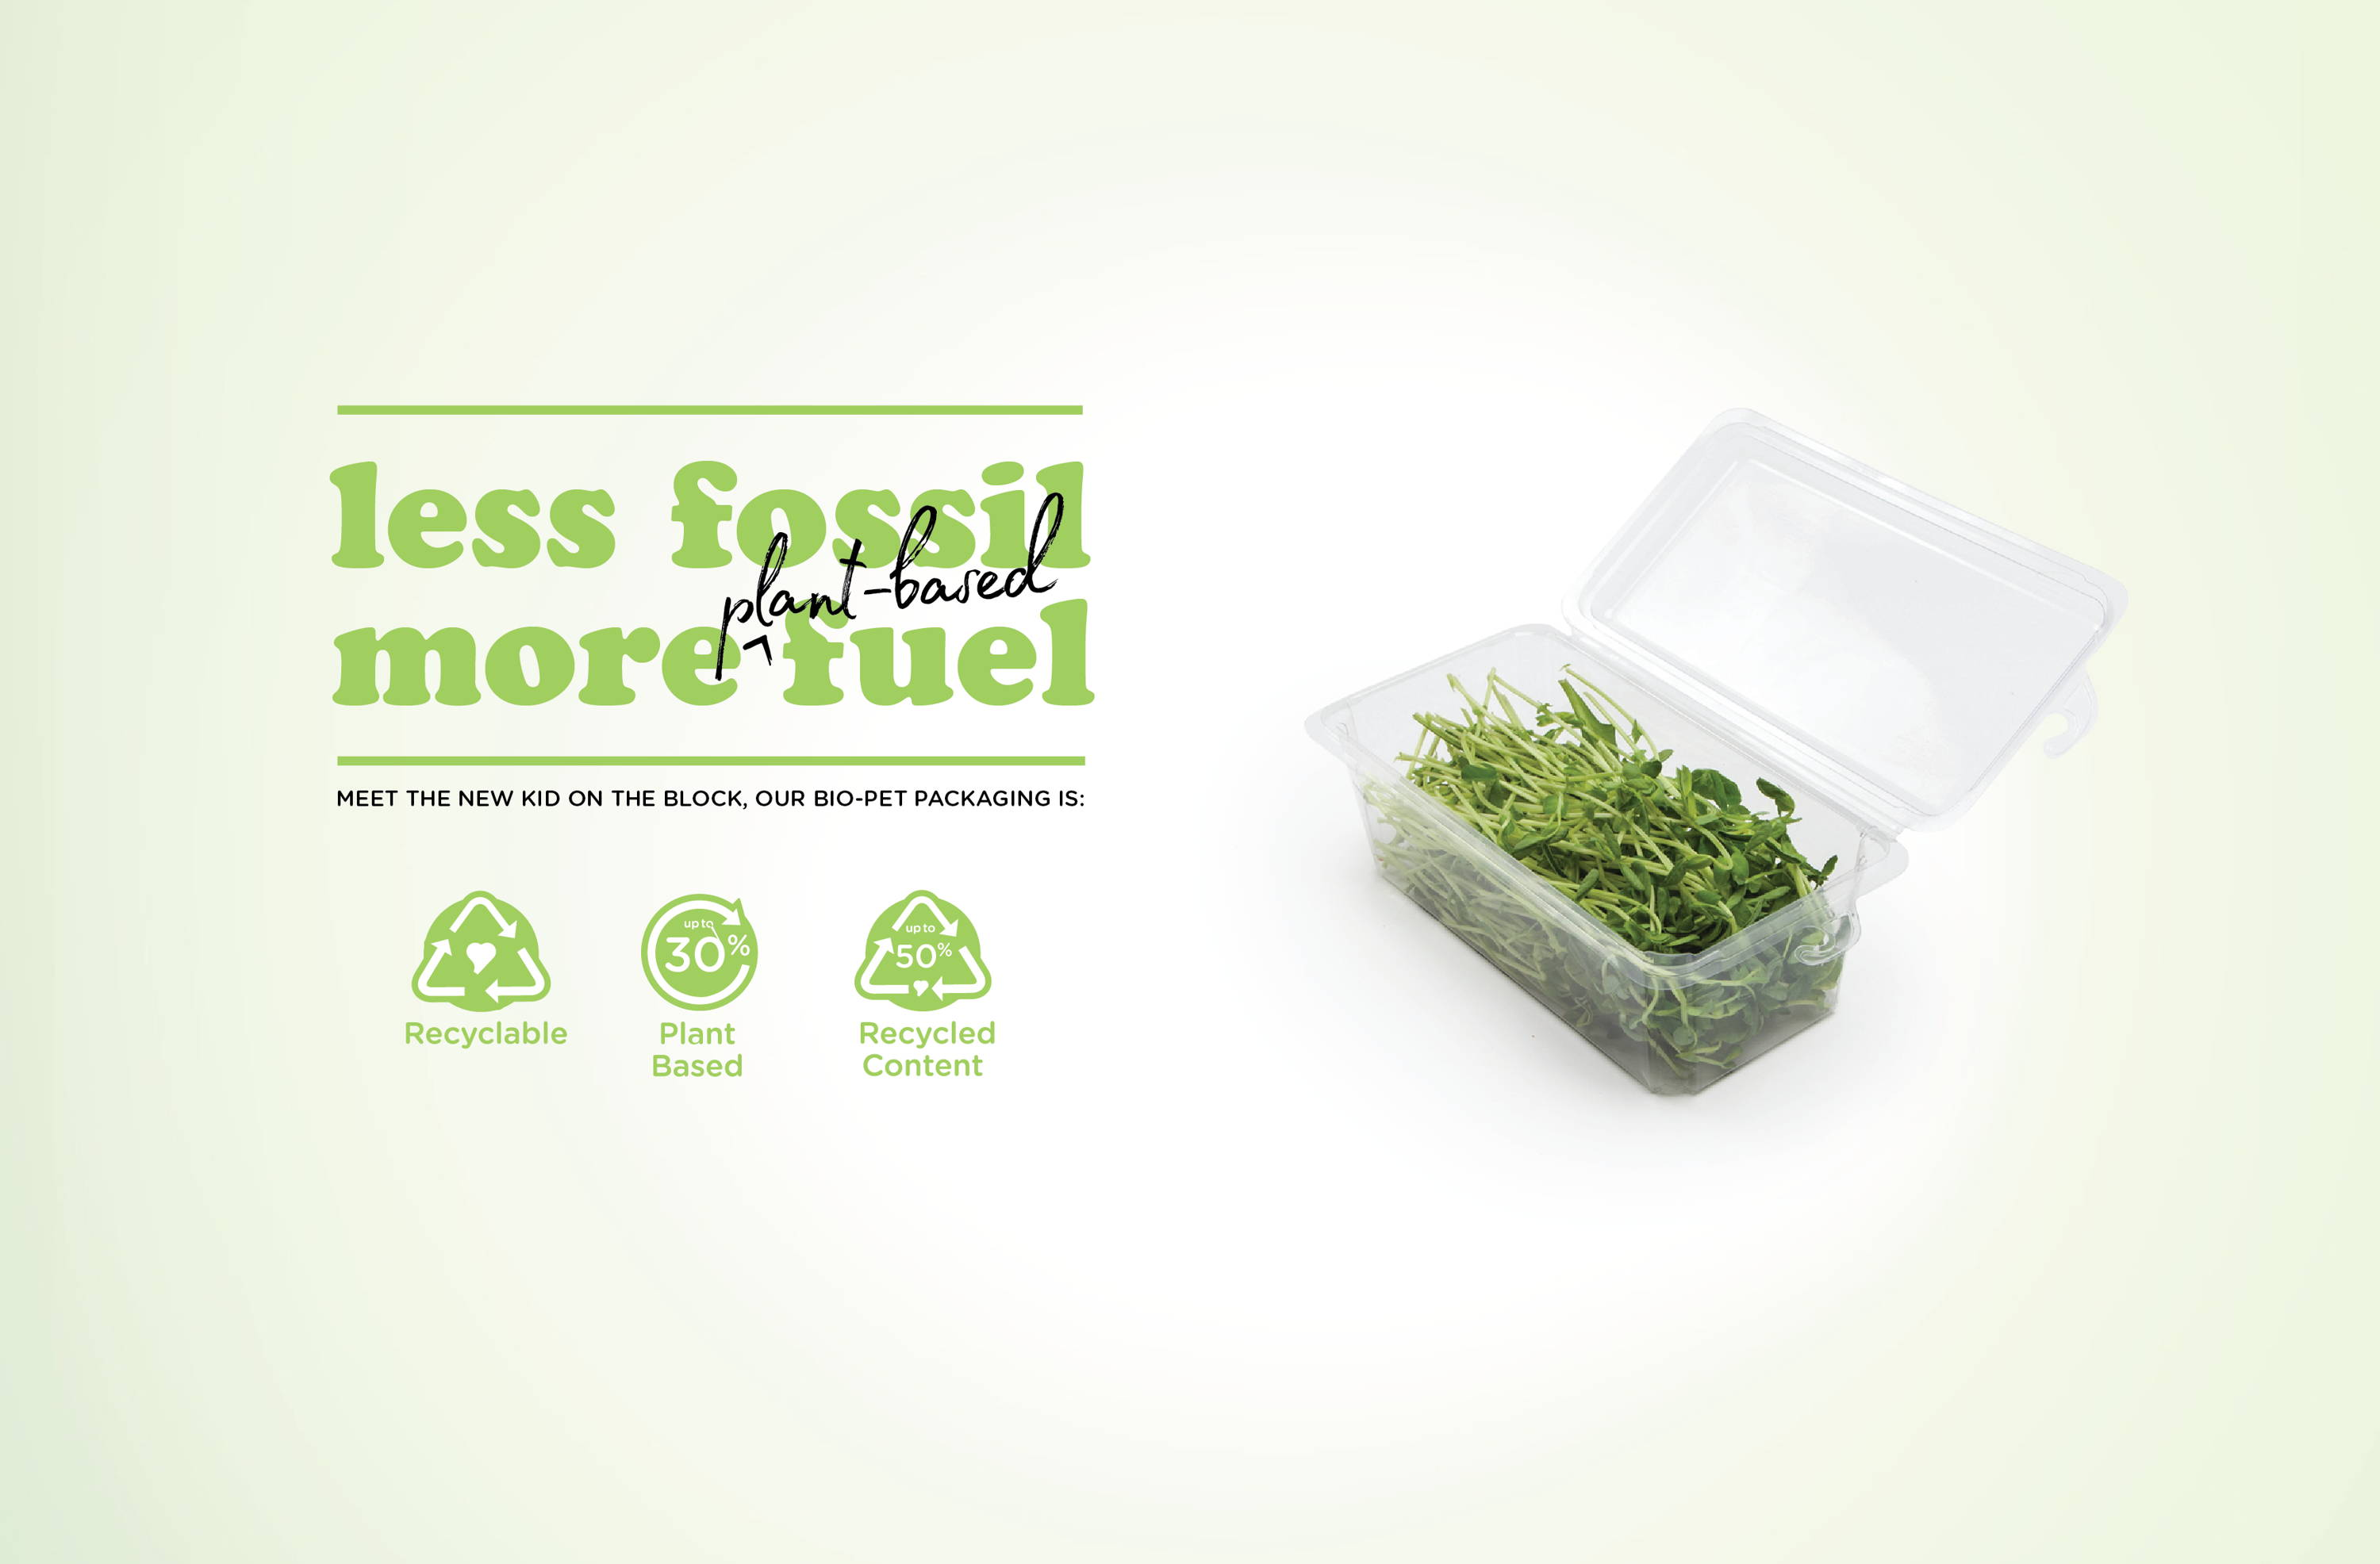 sustainable packaging materials